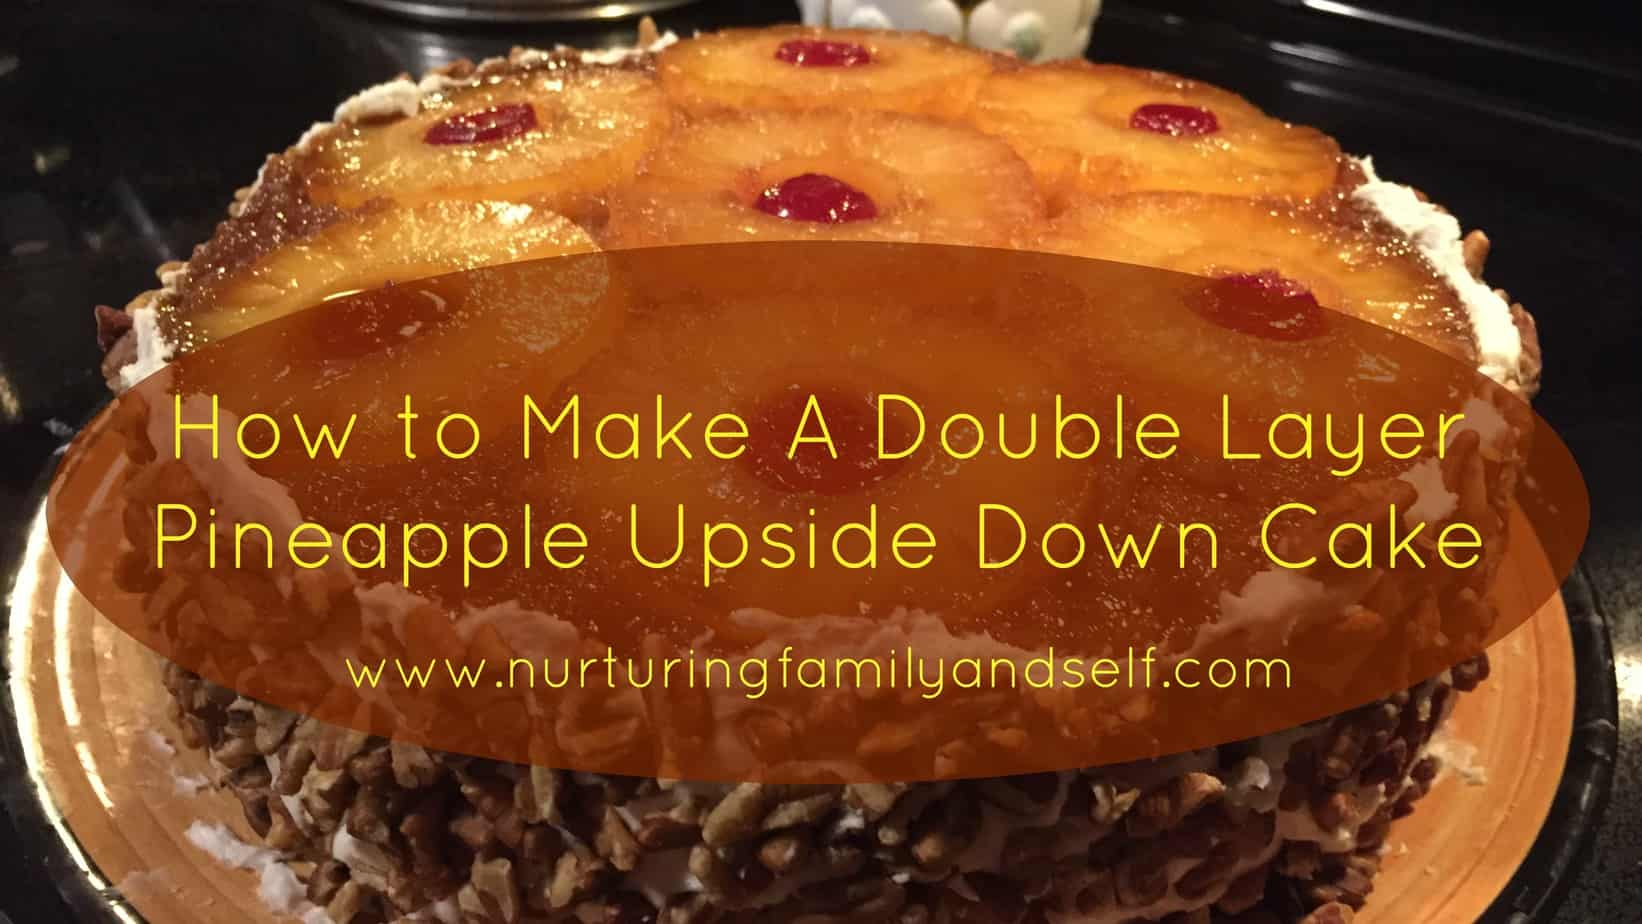 Pineapple Upside Down Cake Archives Nurturing Family Self